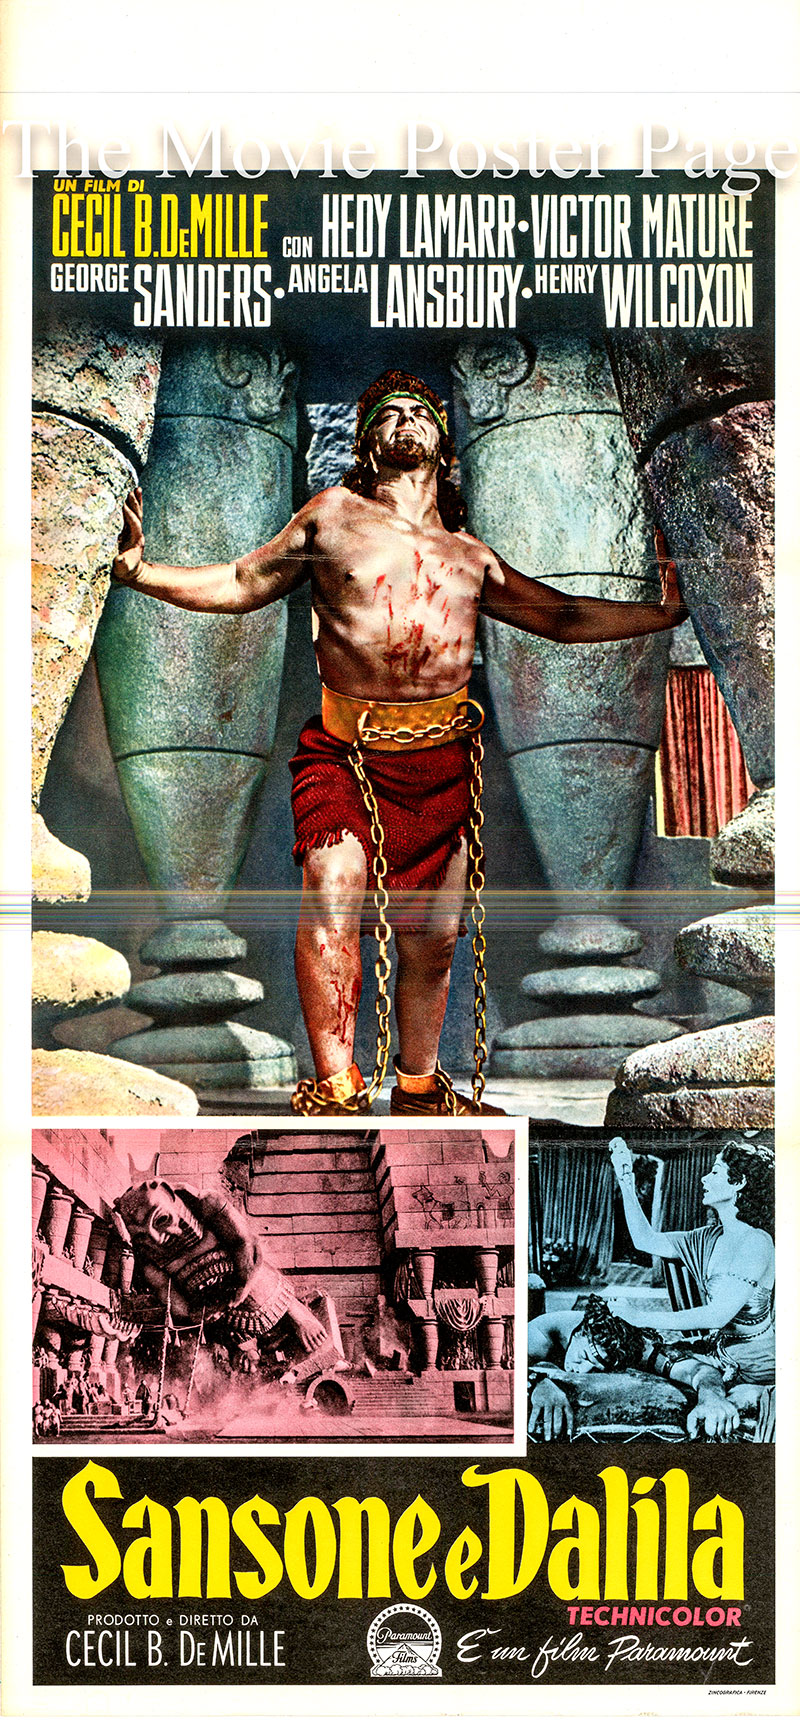 Pictured is an Italian locandina poster for the 1949 Cecil B. DeMille film Samson and Delilah starring Victor Mature as Samson.